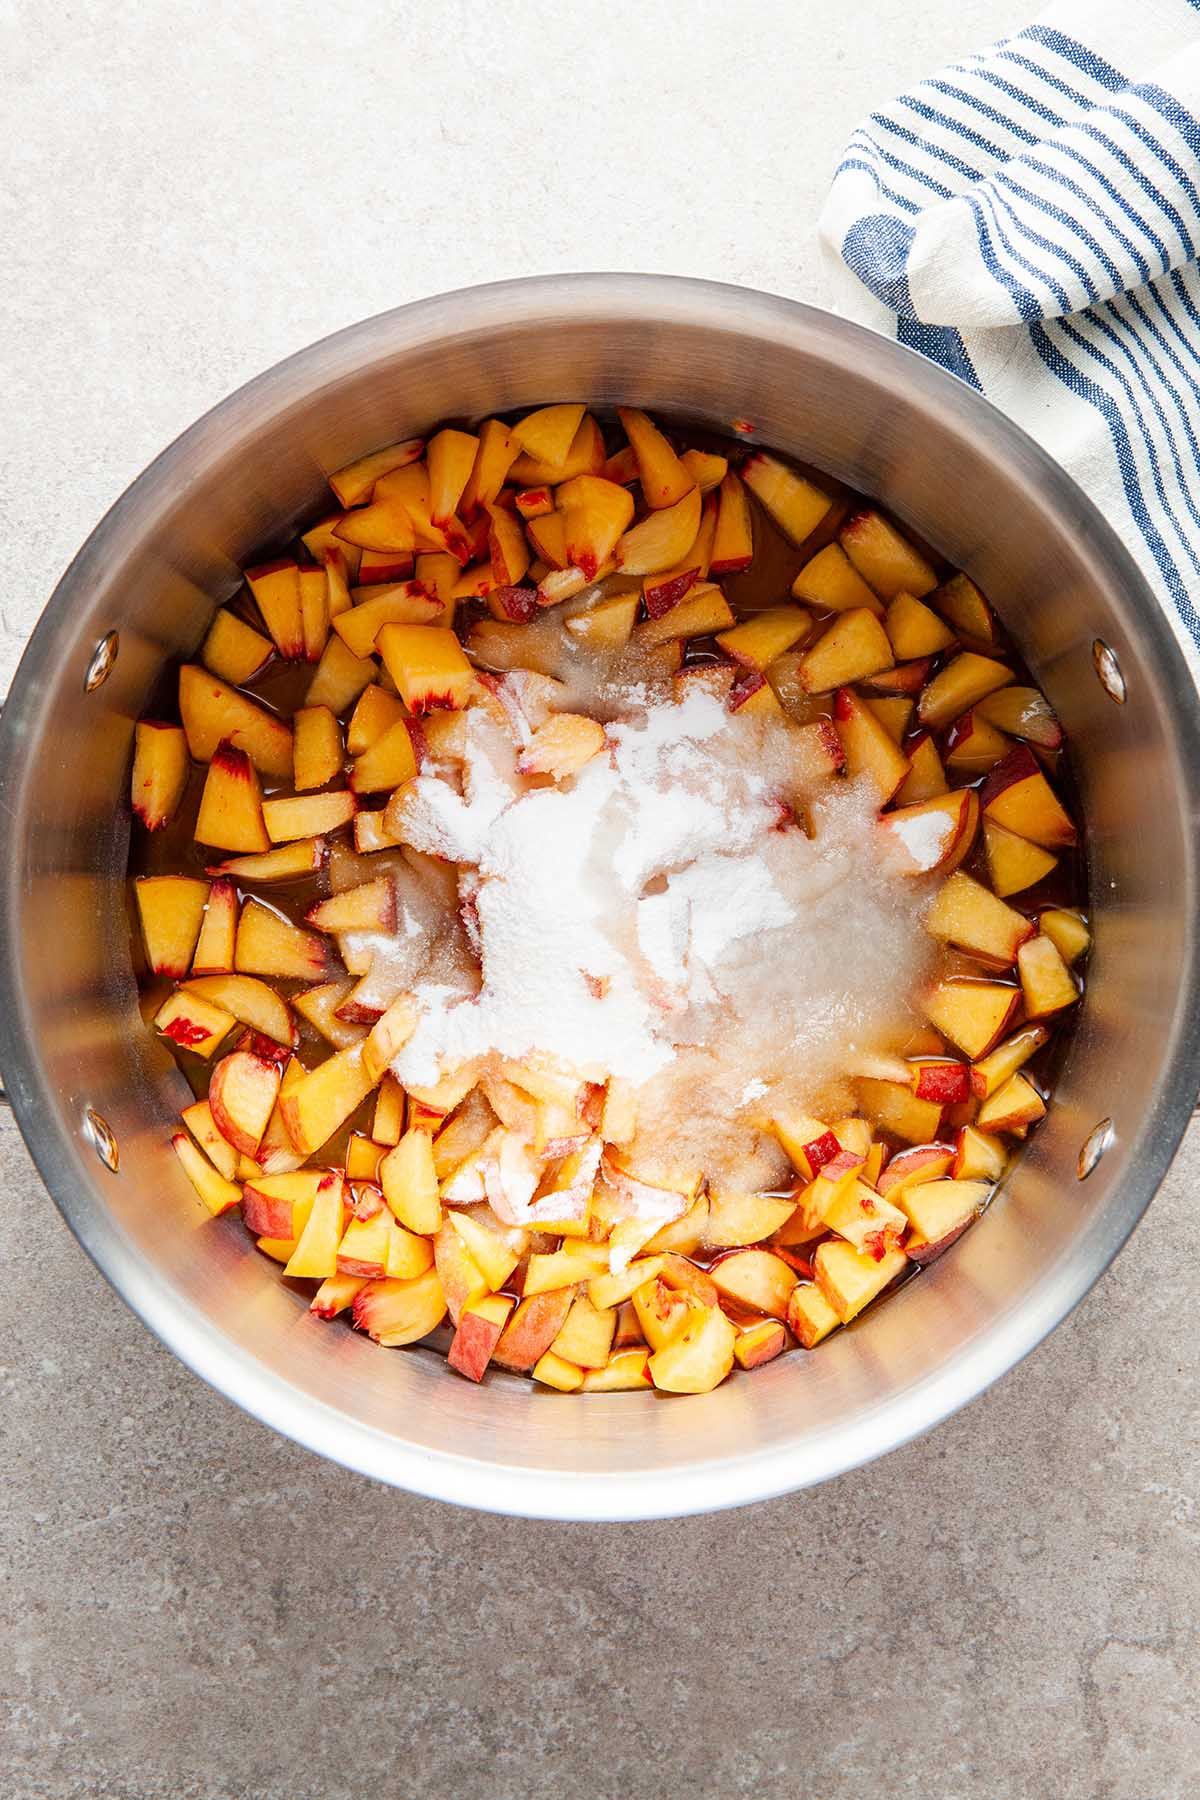 Chopped peaches, sugar, and maple syrup in a pot.